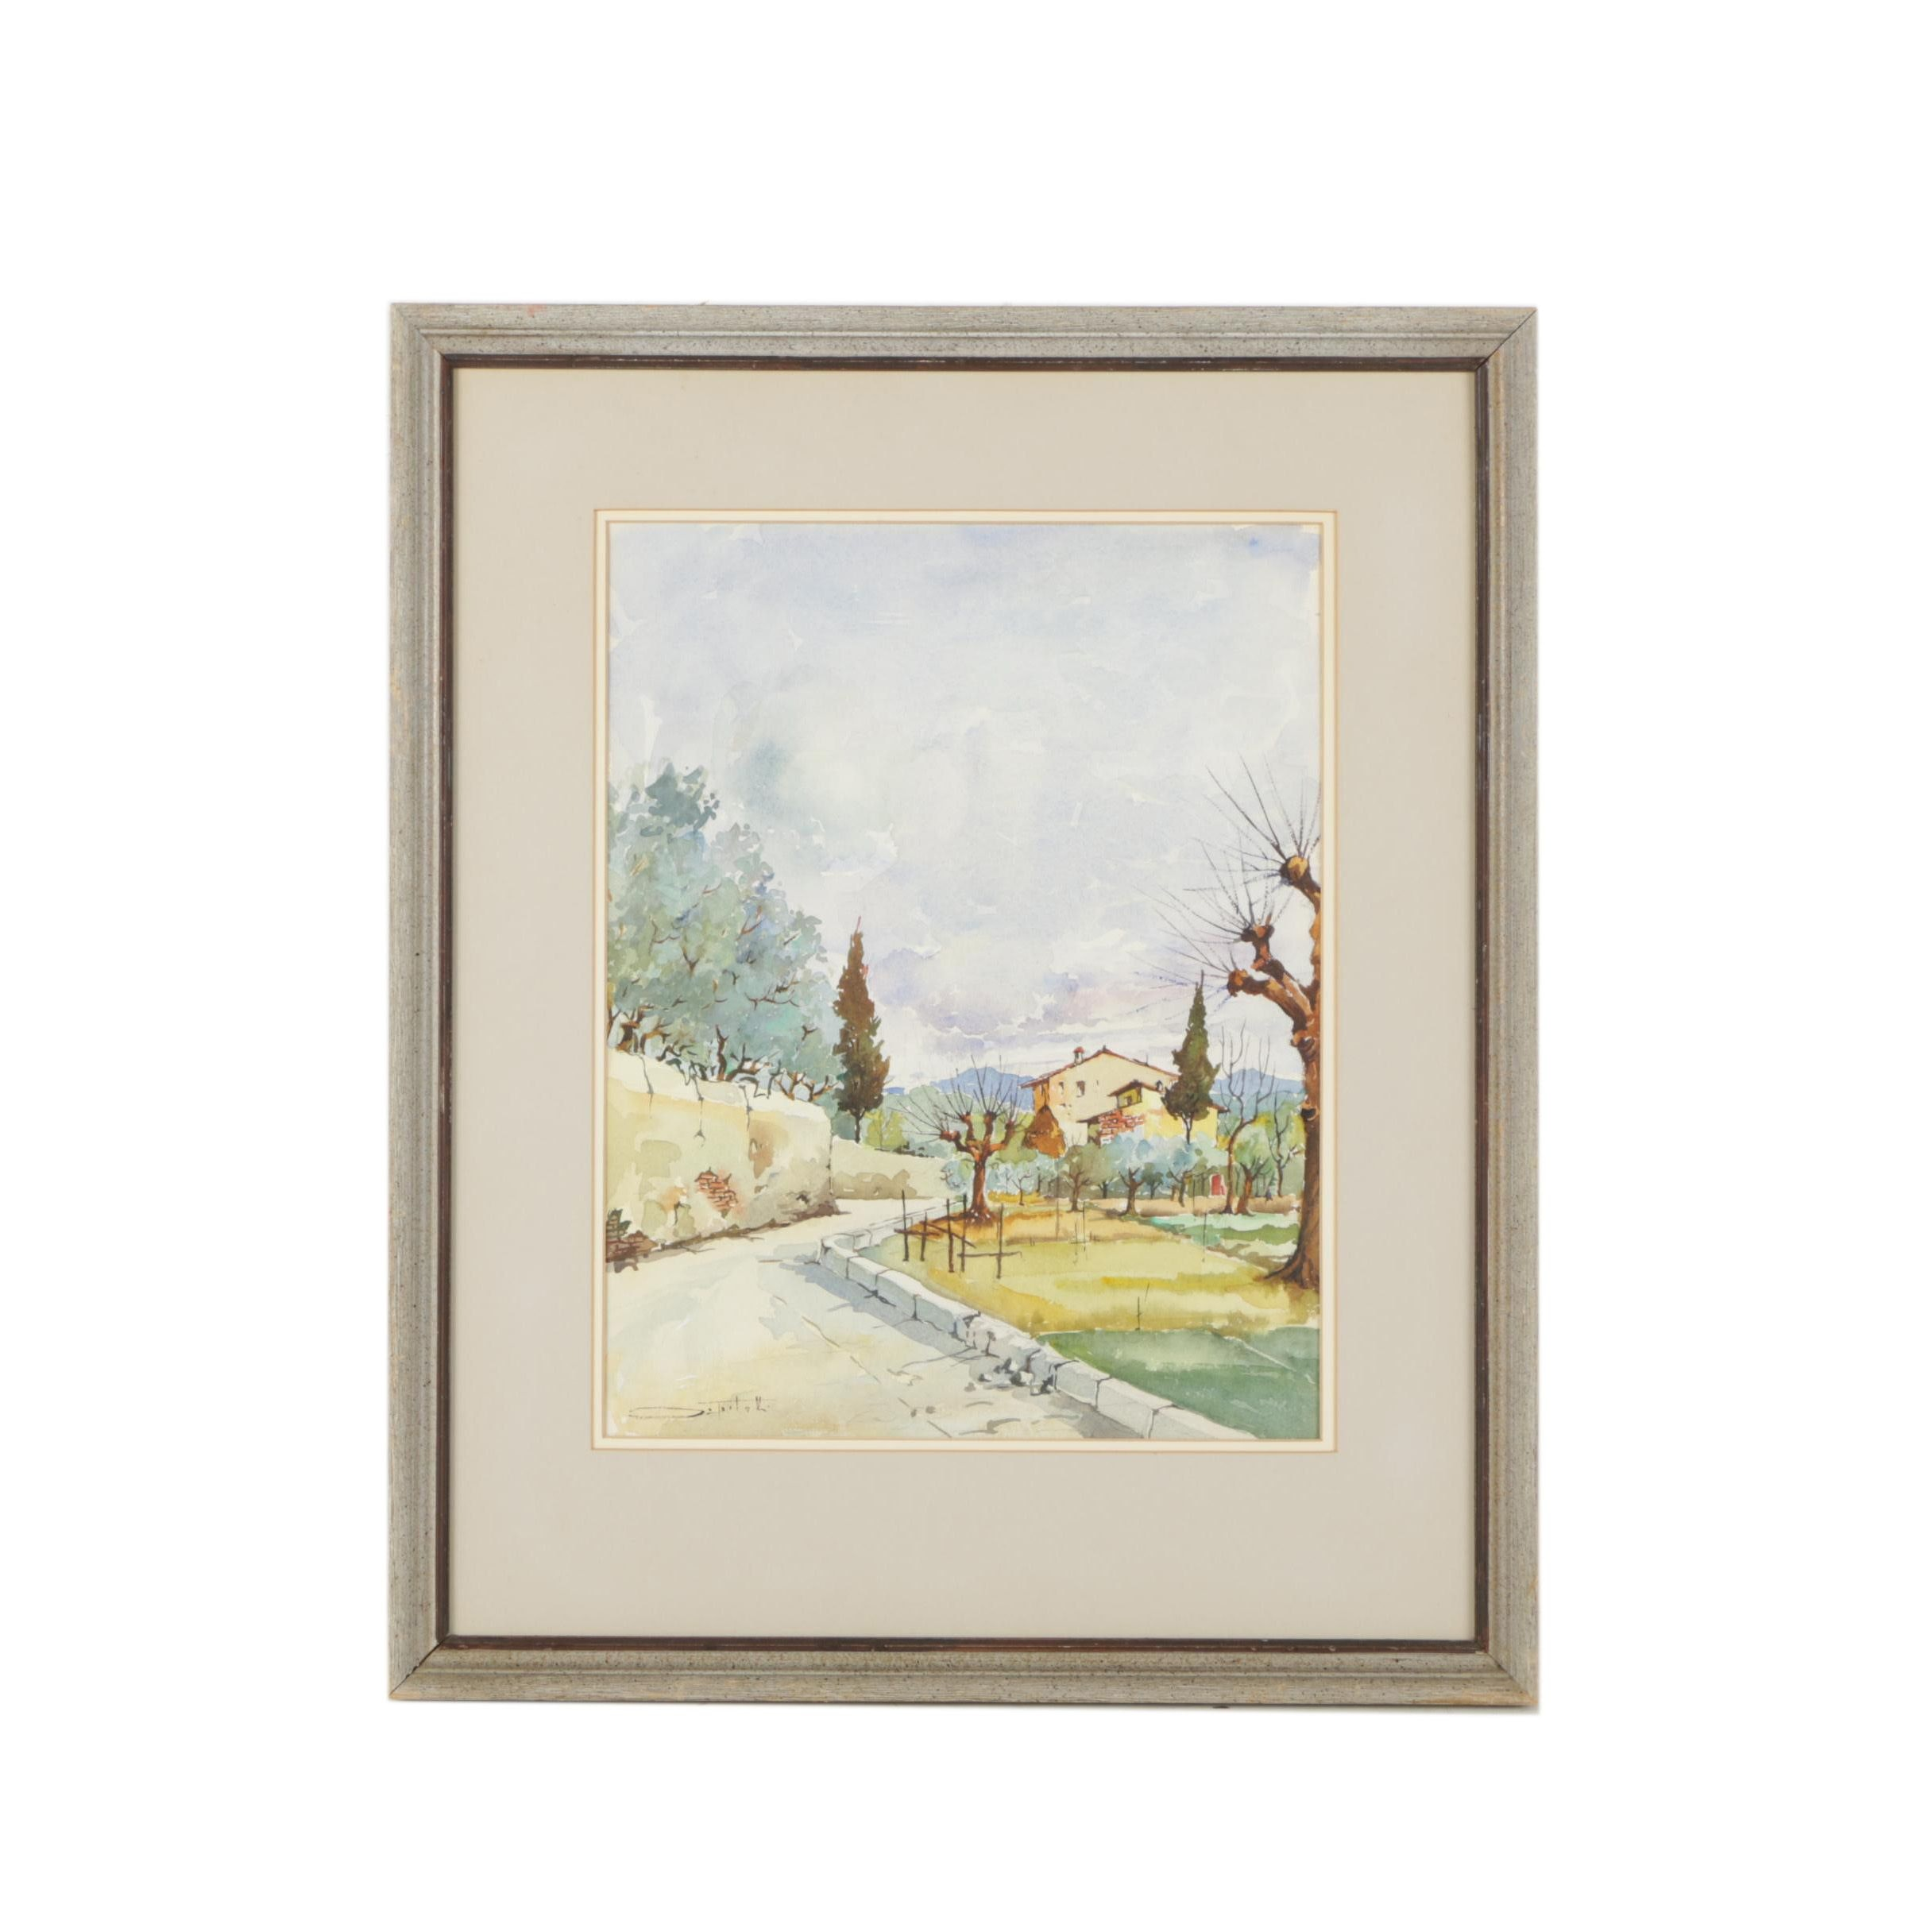 Watercolor Painting of a Stone Road